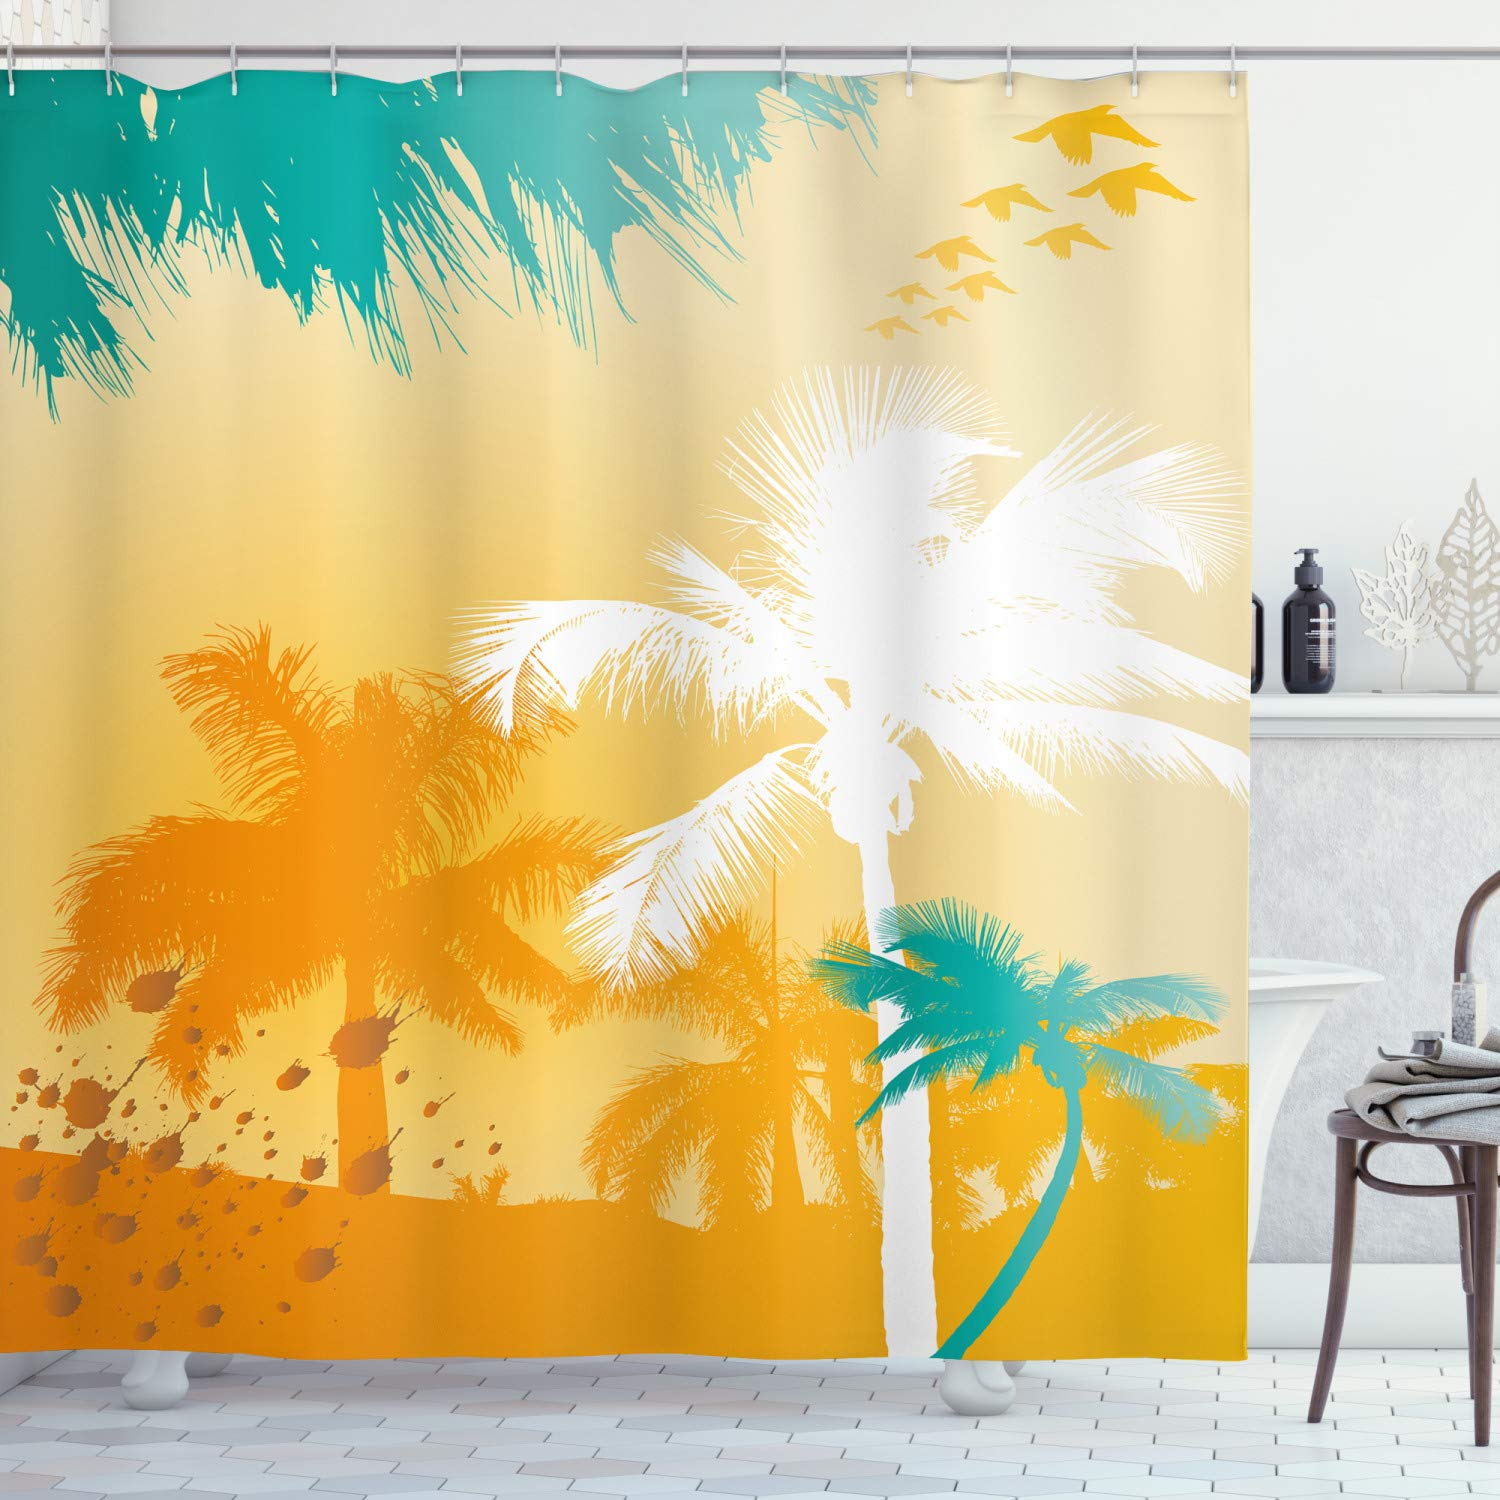 """Ambesonne Tropical Shower Curtain, Grunge Style Vibrant Palms Silhouette Paradise with Funky Retro Graphic, Cloth Fabric Bathroom Decor Set with Hooks, 75"""" Long, Marigold Teal"""